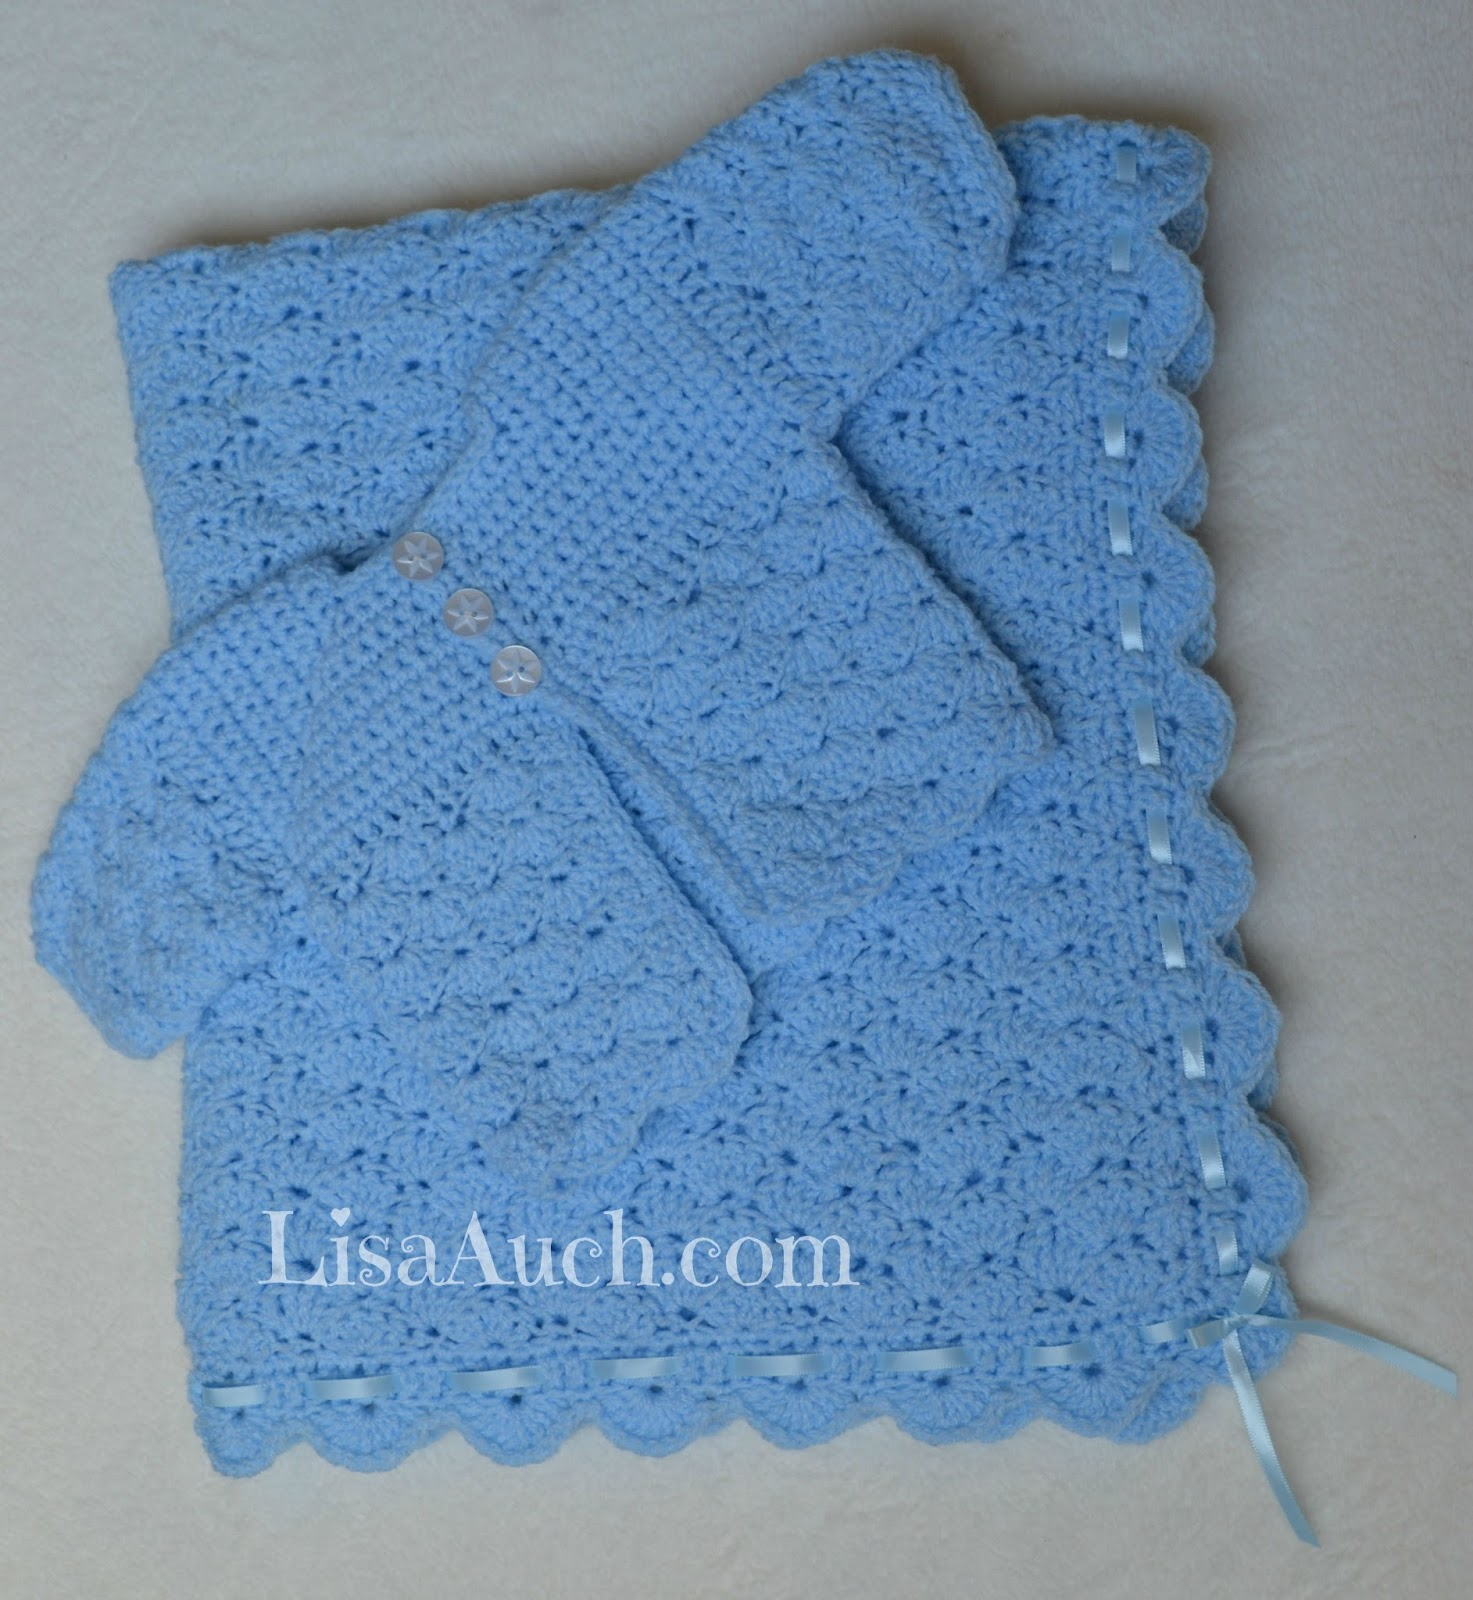 Free Crochet Patterns And Designs By Lisaauch Free Crochet Patterns For Babies Cardigan And Blanket Set The Perfect Crochet Set For A Boy Or Girl